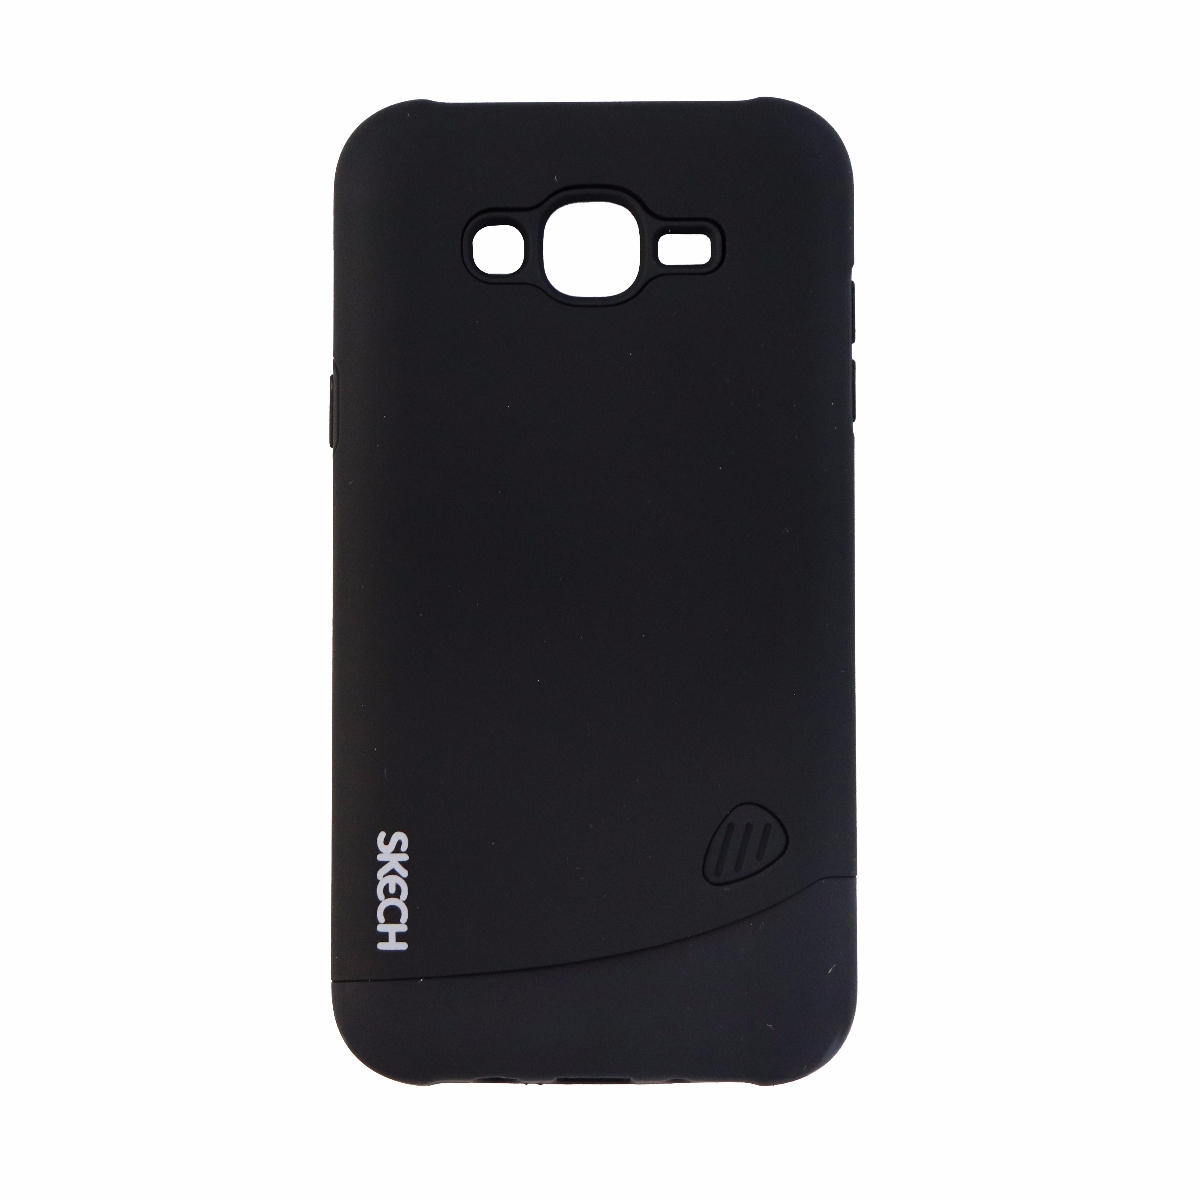 Skech Bounce Series Dual Layer Case Cover for Samsung Galaxy J7 - Matte Black